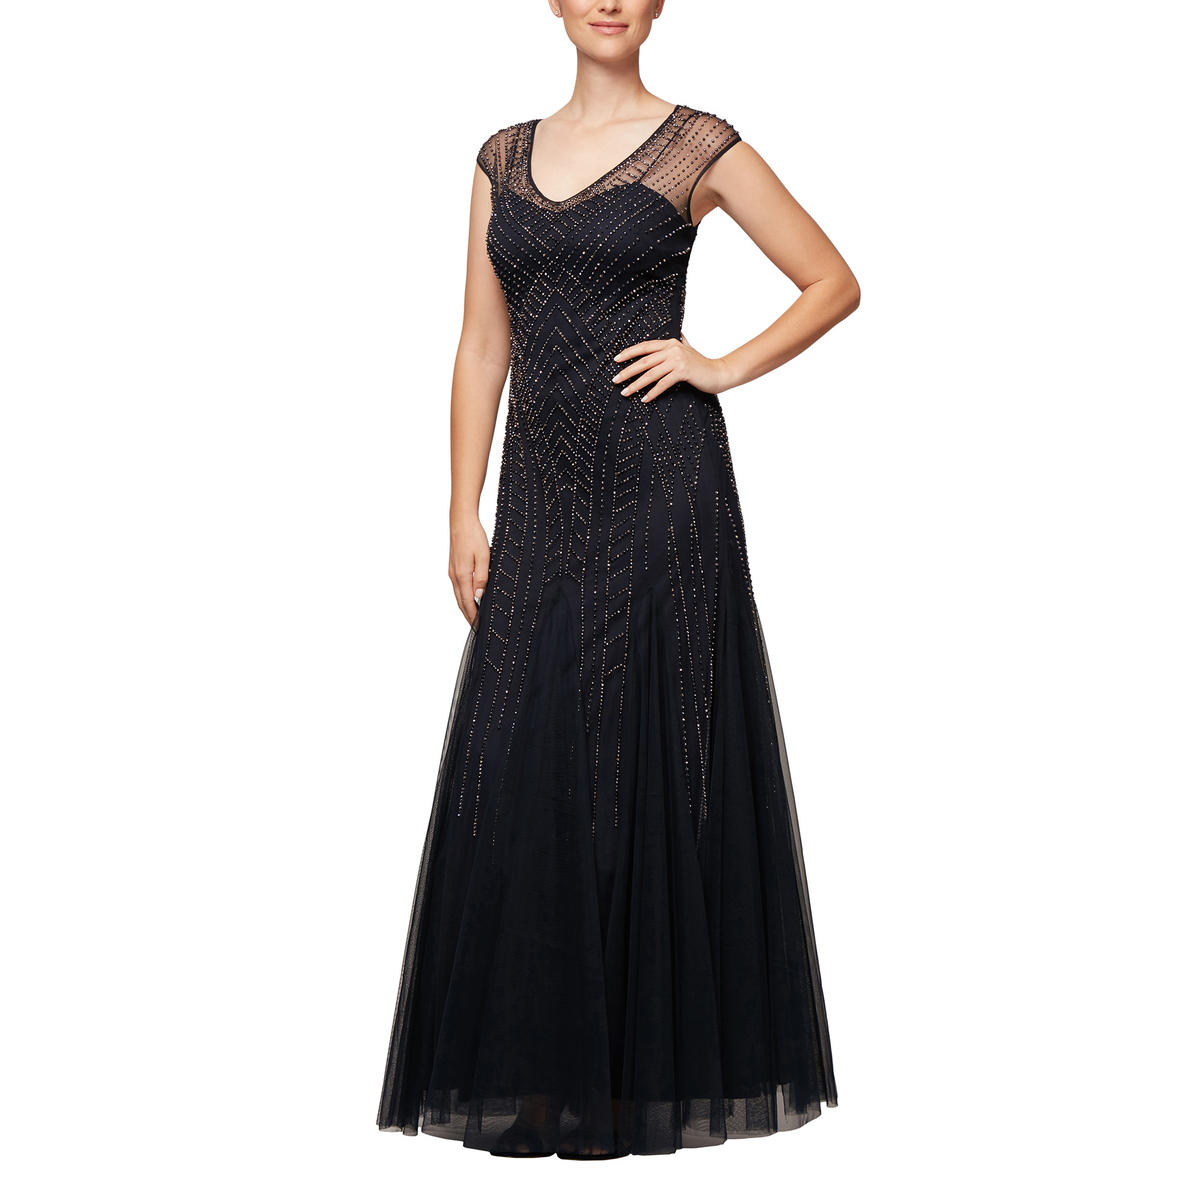 ALEX APPAREL GROUP INC - Sheer Beaded Gown